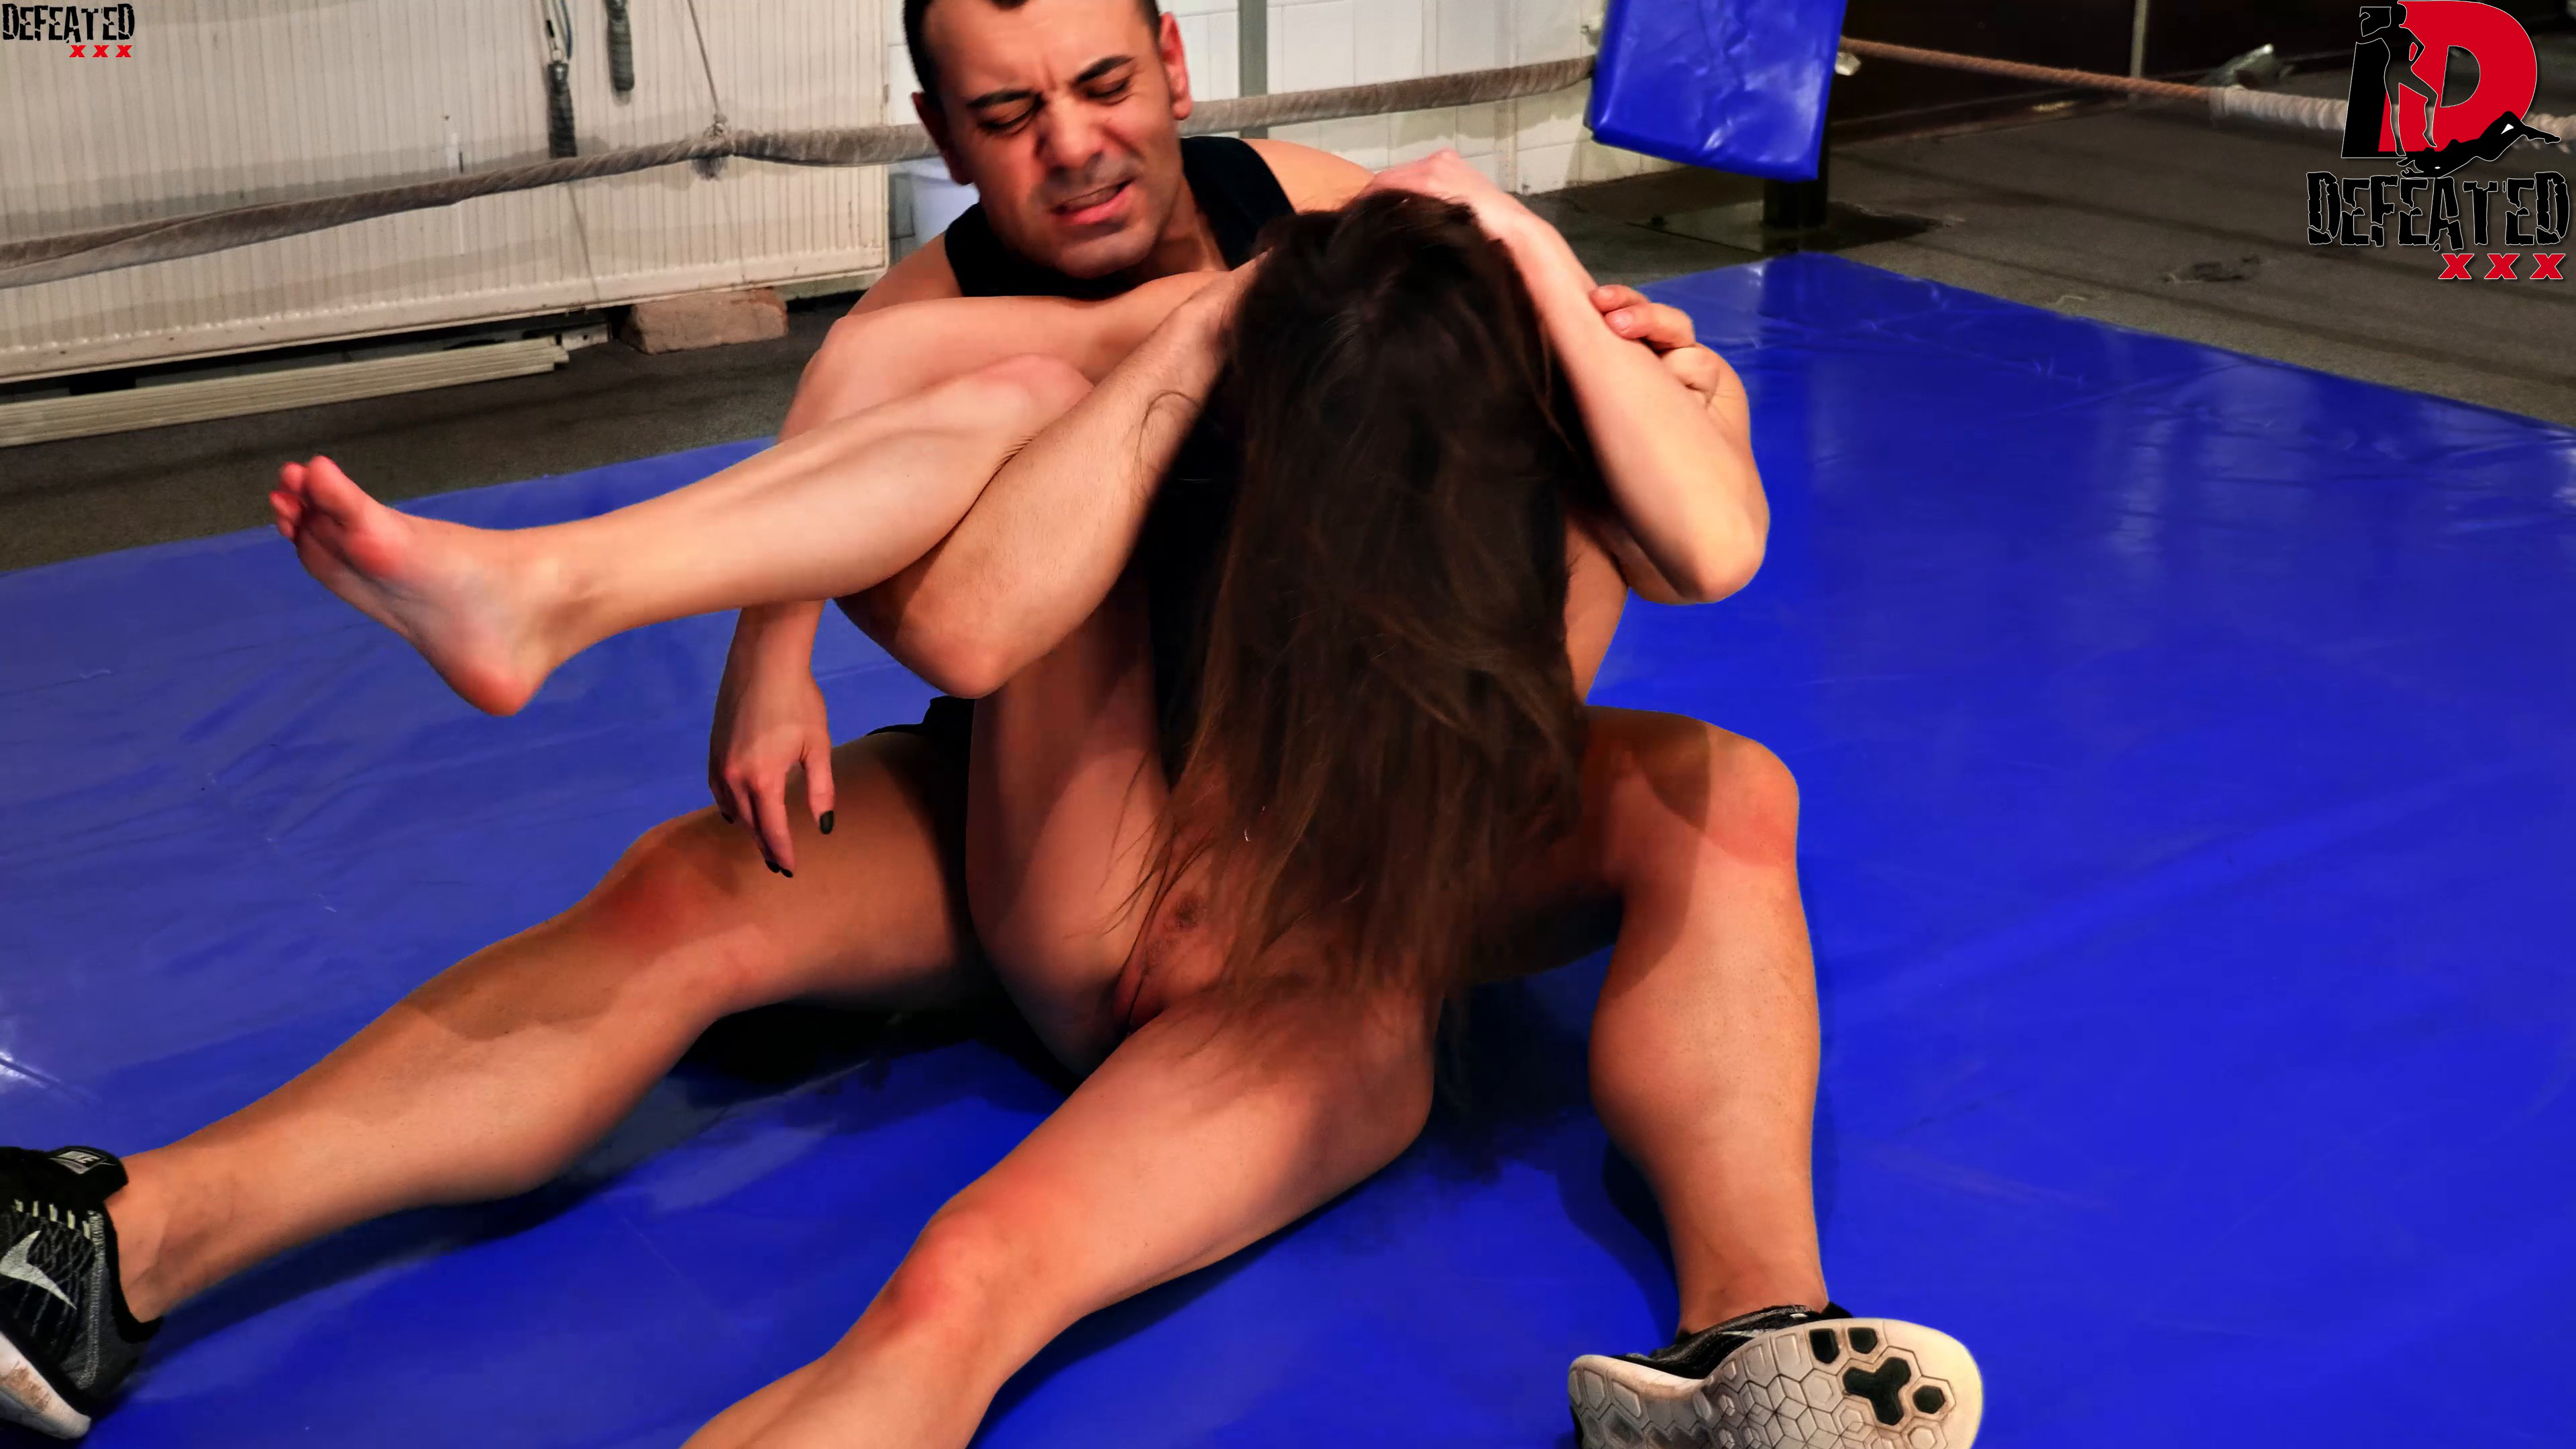 DEFEATED-MXD66---Amirah-Antonio-(38)